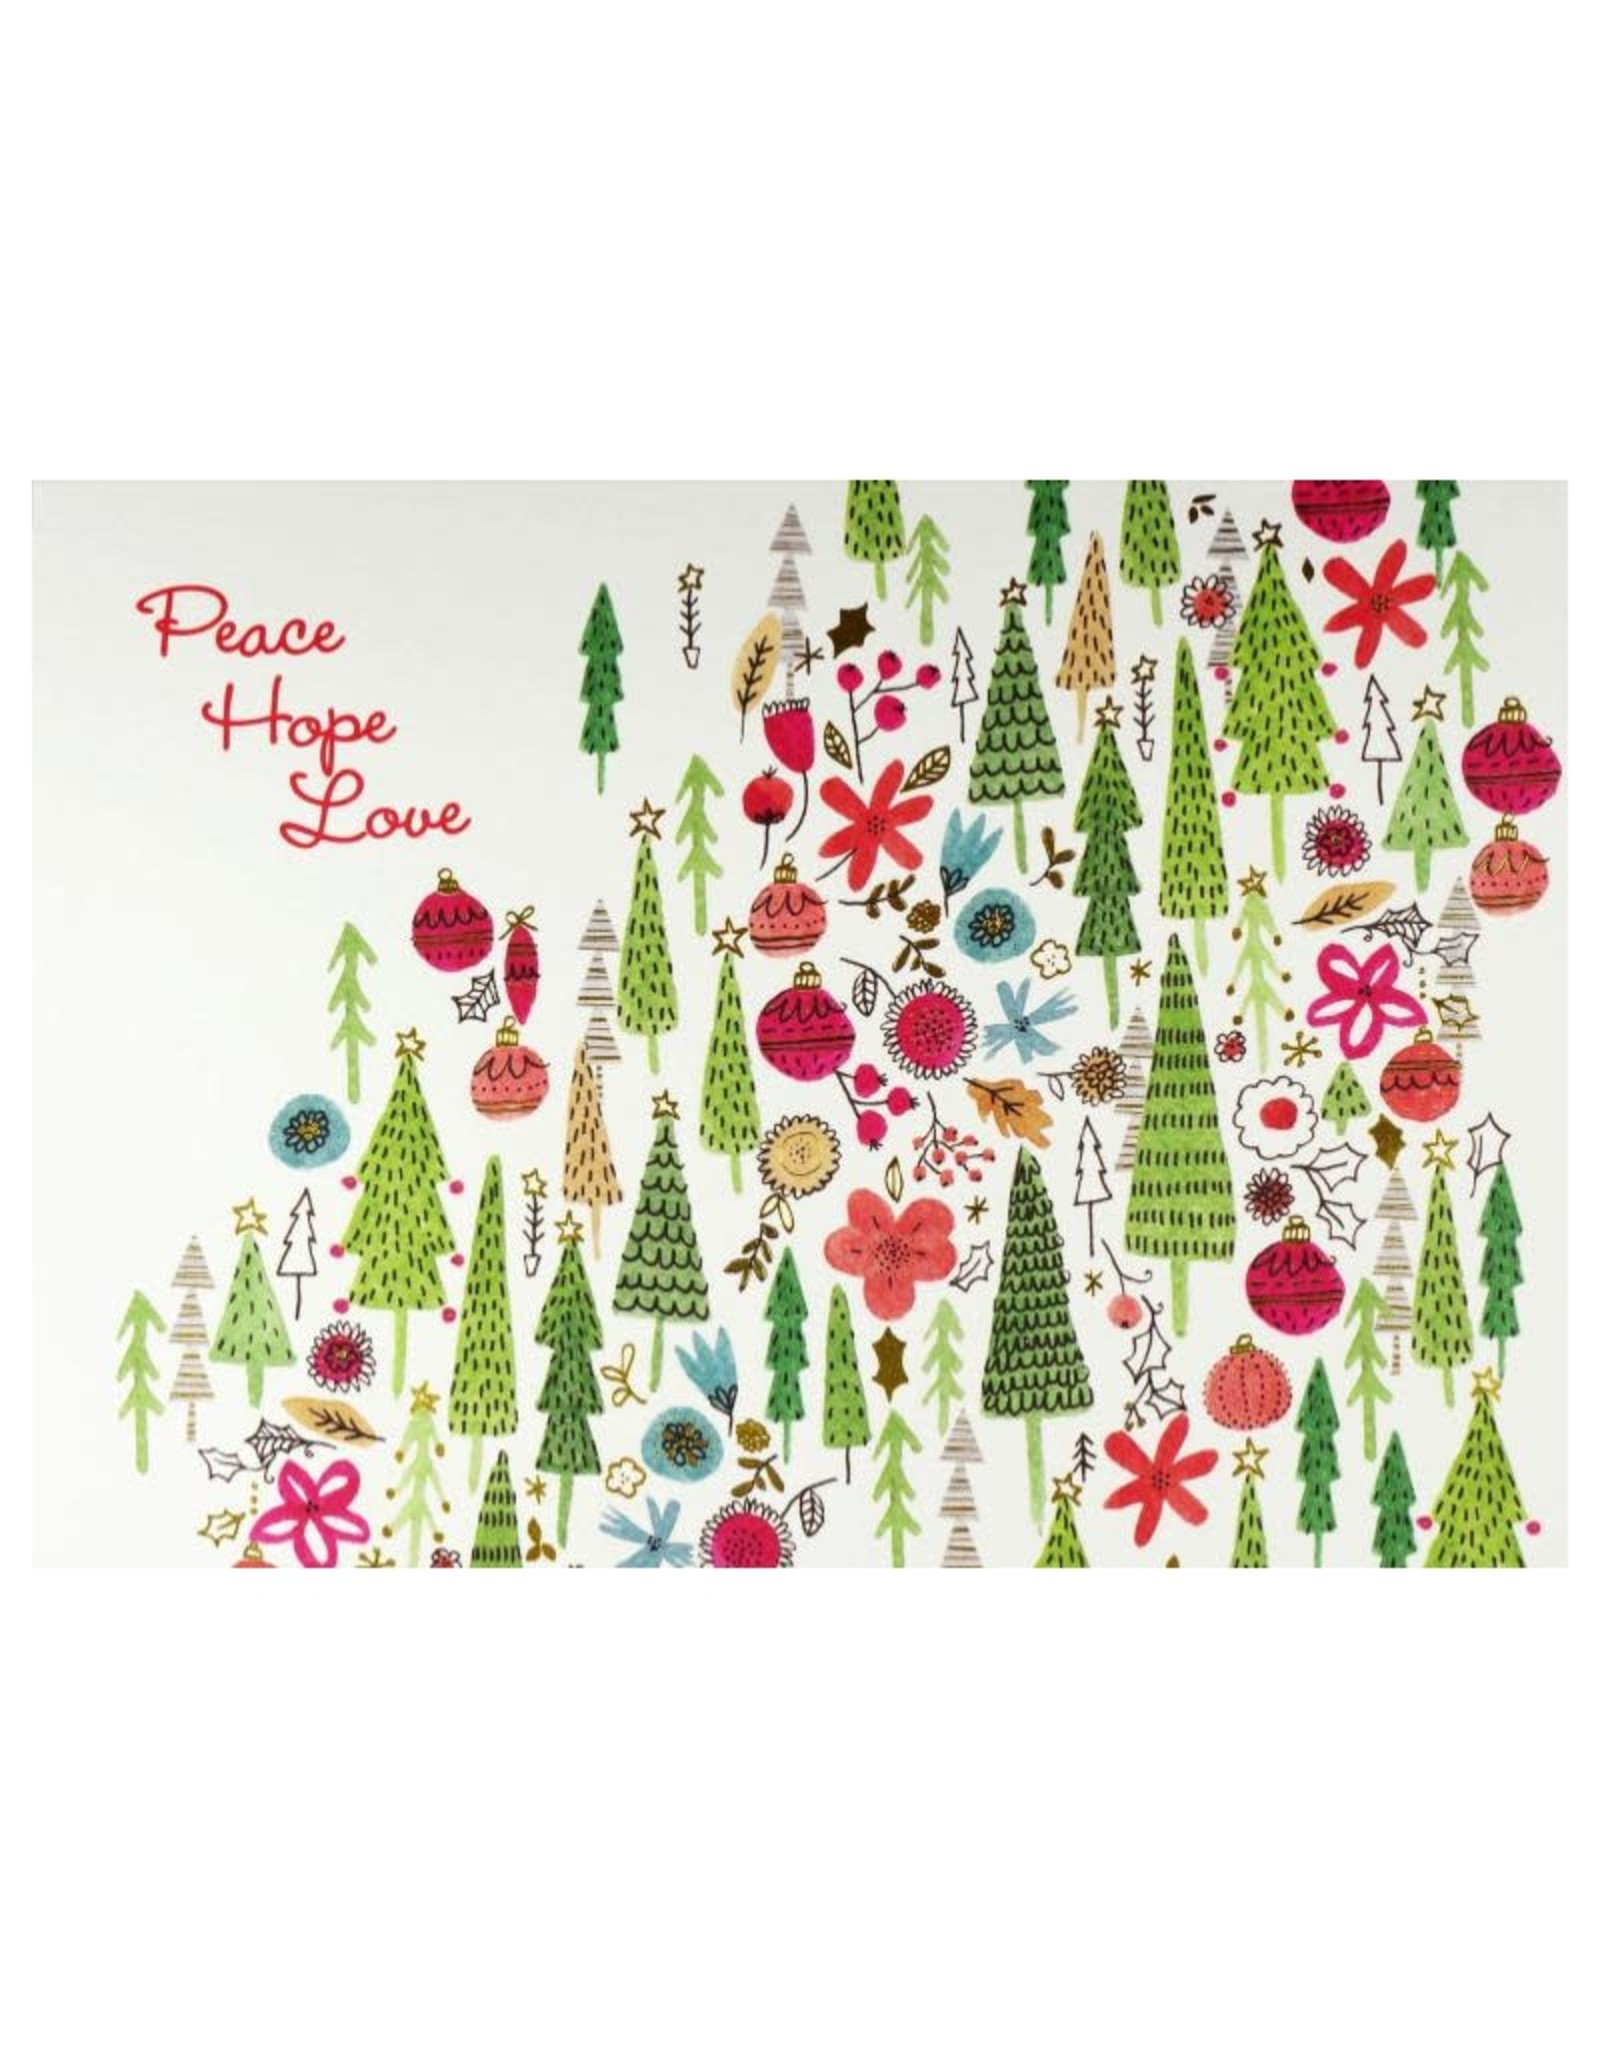 Peter Pauper Merry Medley Deluxe Boxed Holiday Cards